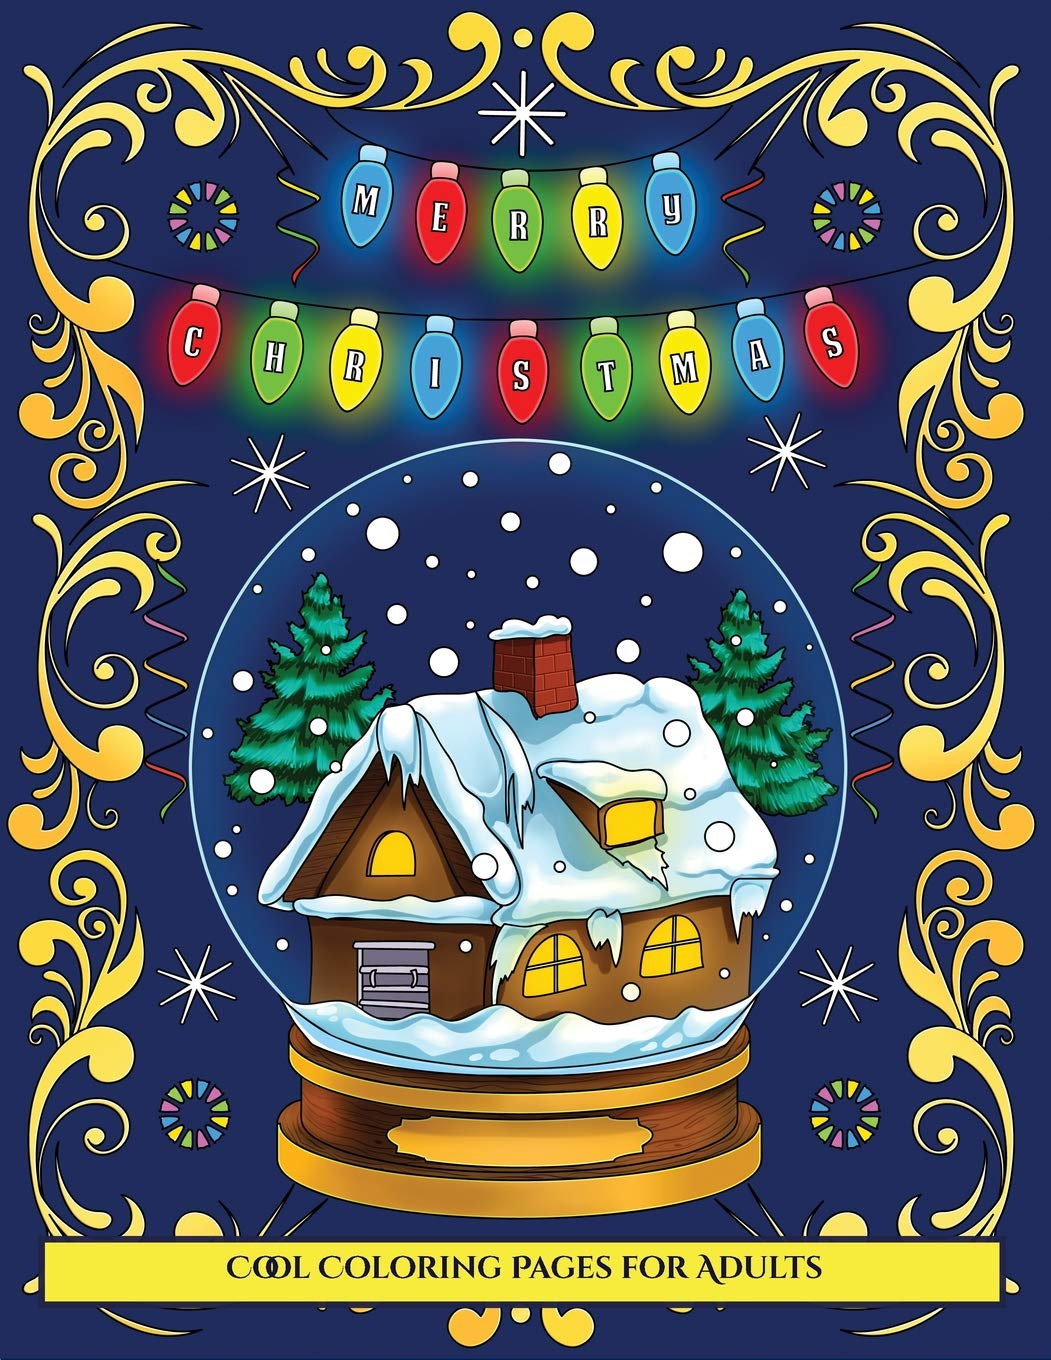 cool coloring pages for adults merry christmas an adult coloring colouring book with 30 unique christmas coloring pages a great gift for